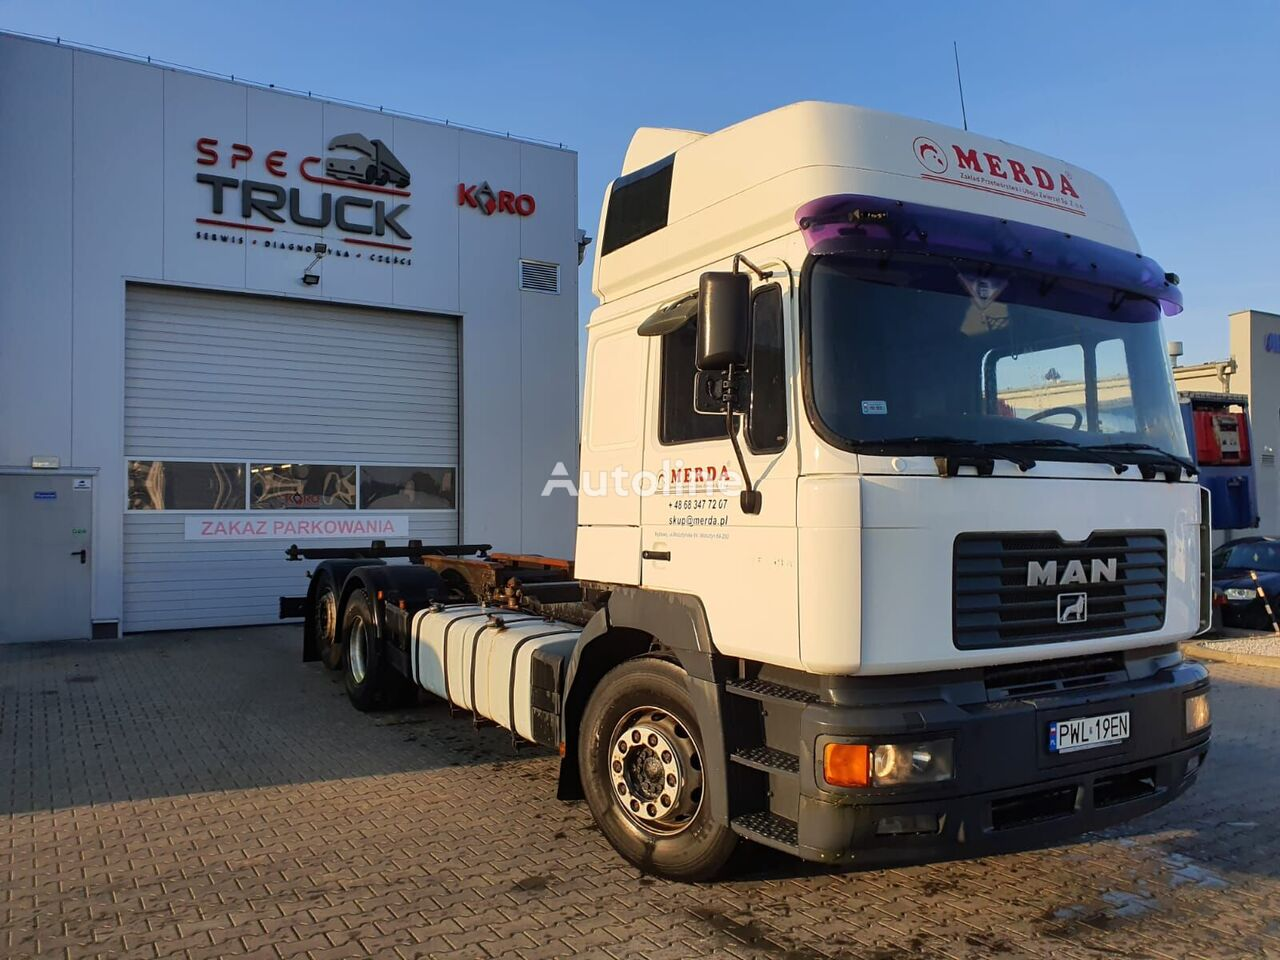 MAN 26.364 chassis truck